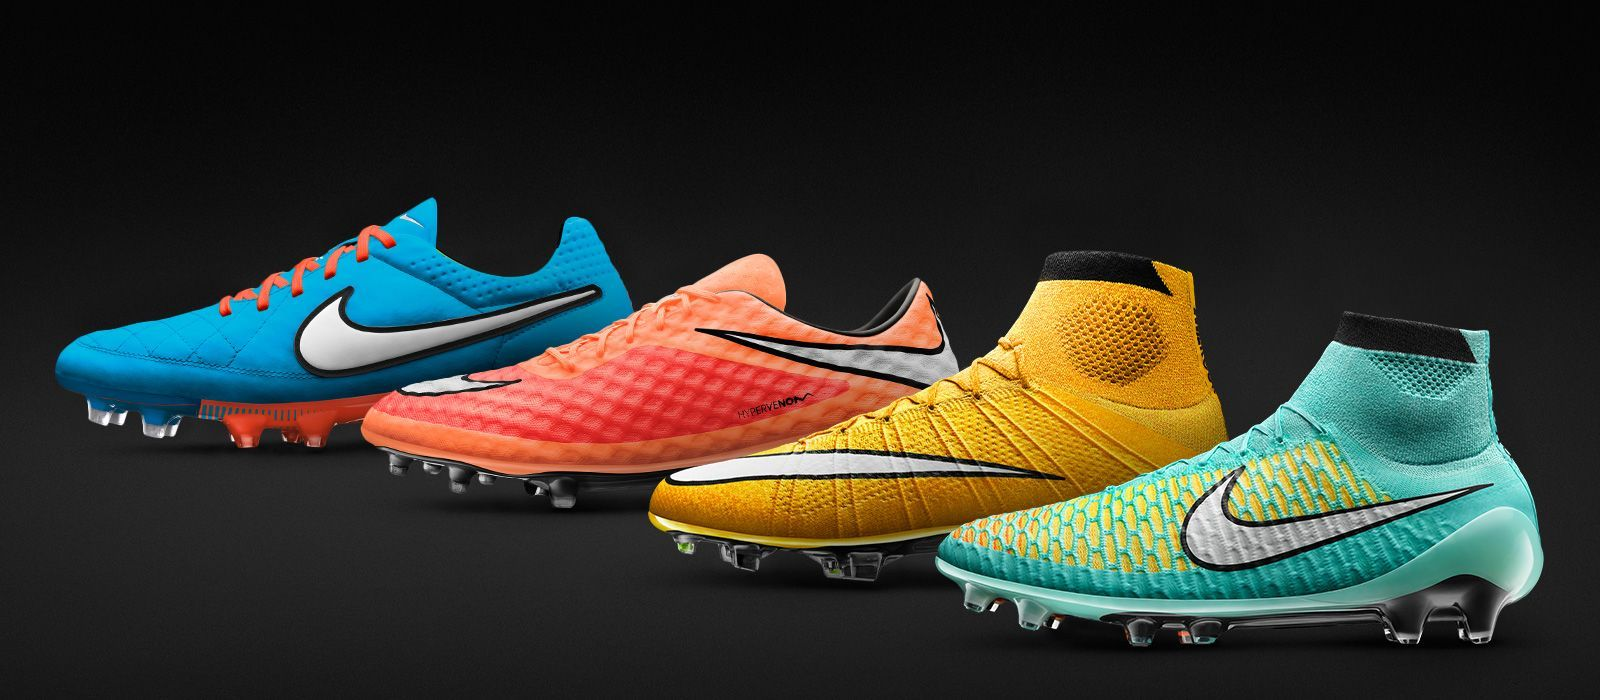 nike latest football shoes